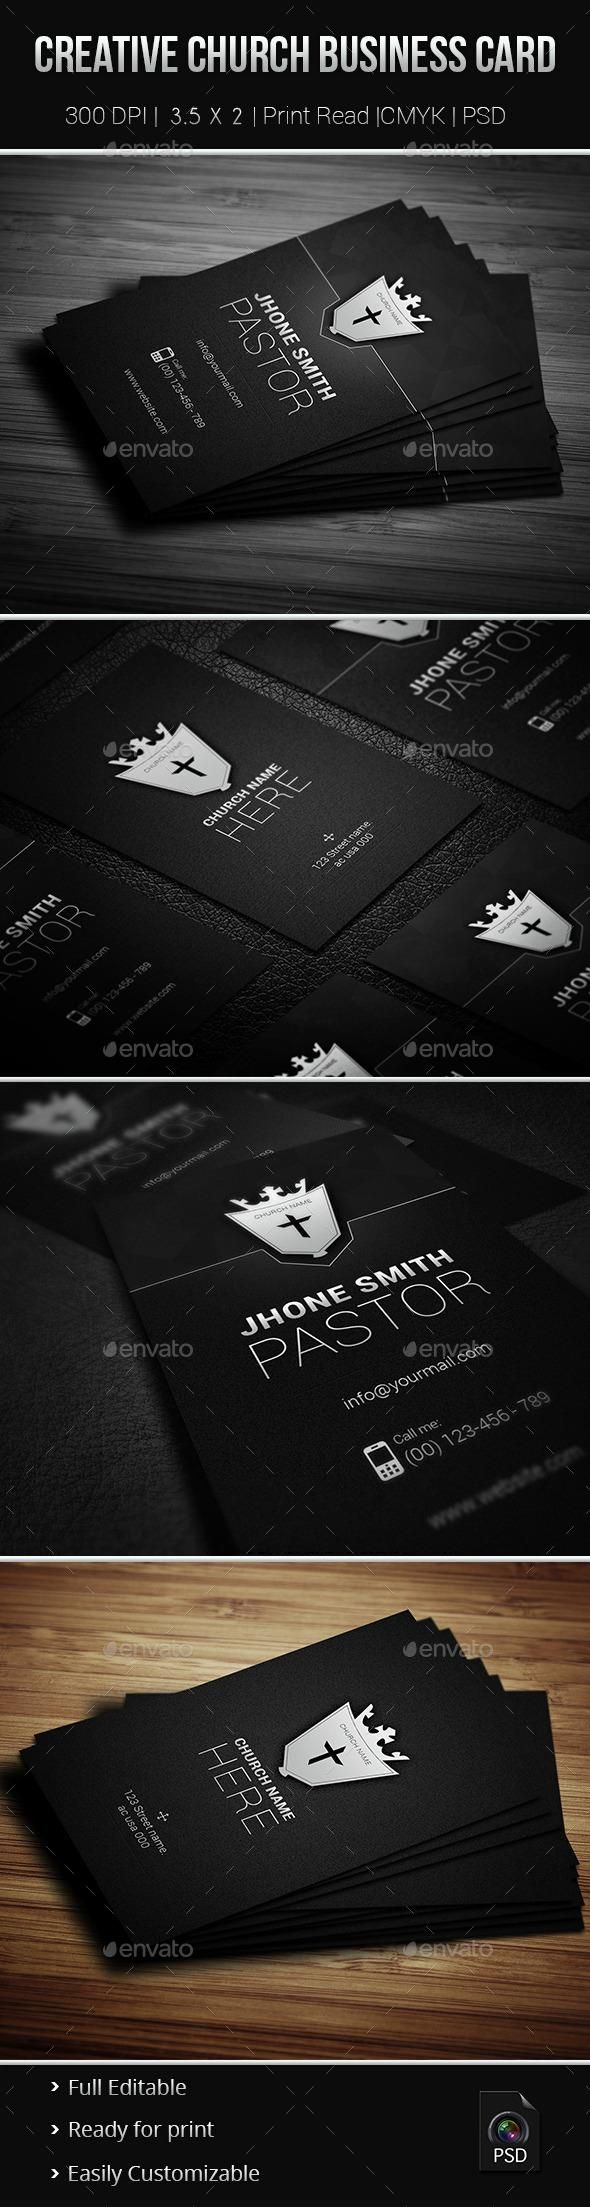 16 best business cards images on pinterest advertising business creative church business card magicingreecefo Gallery